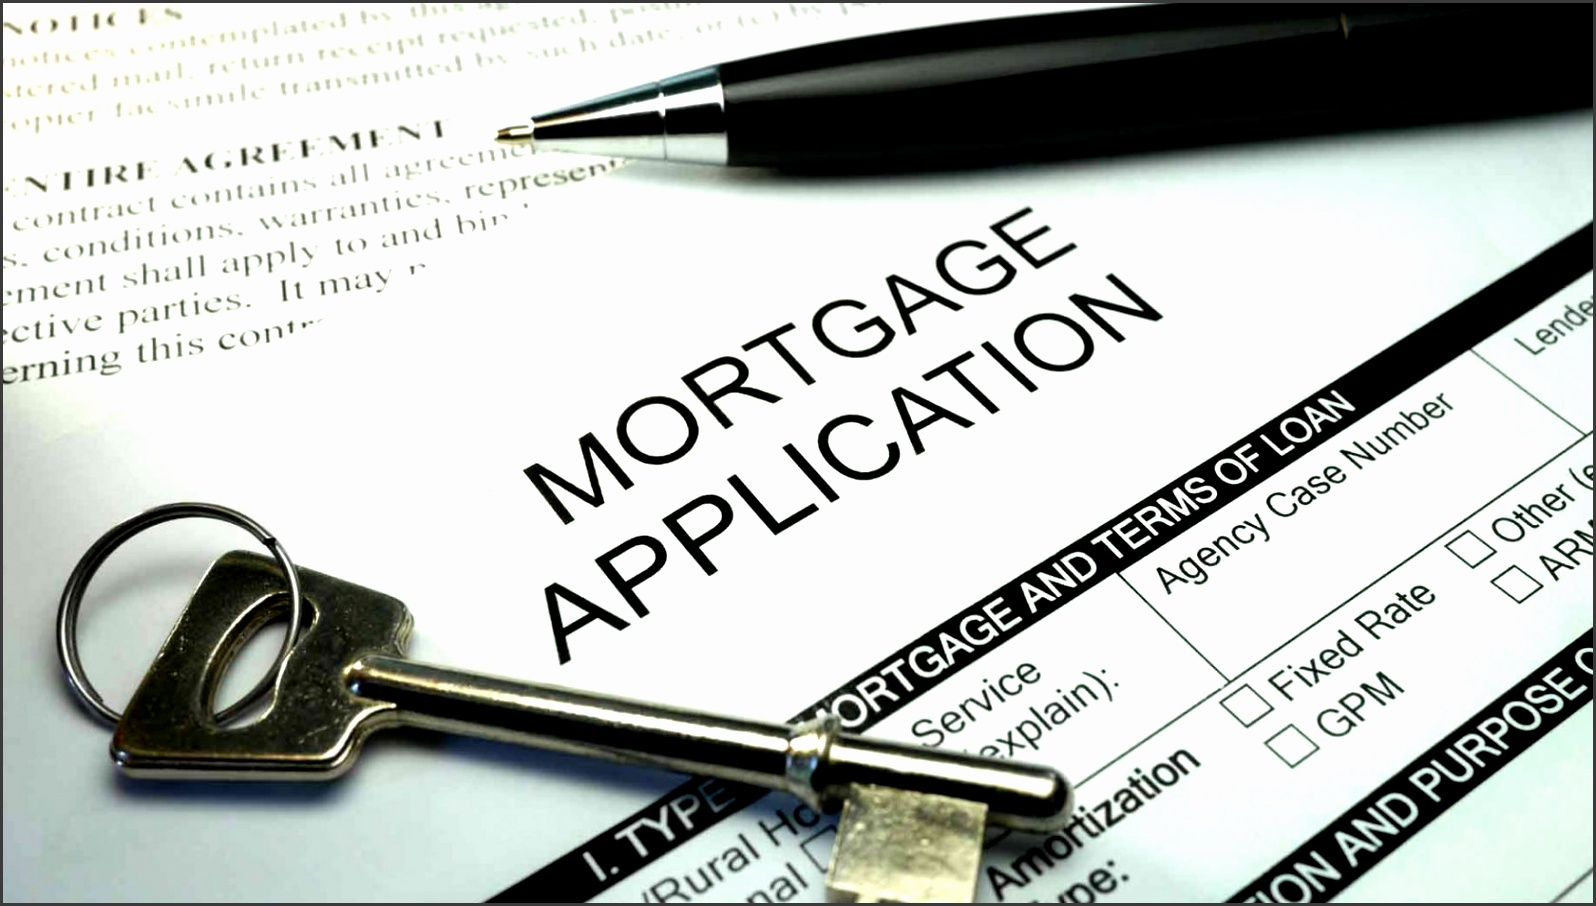 Agreement Family Mortgage Loan Agreements Between Two People Promissory Notee Simple Borrower Contract Form Word Legal